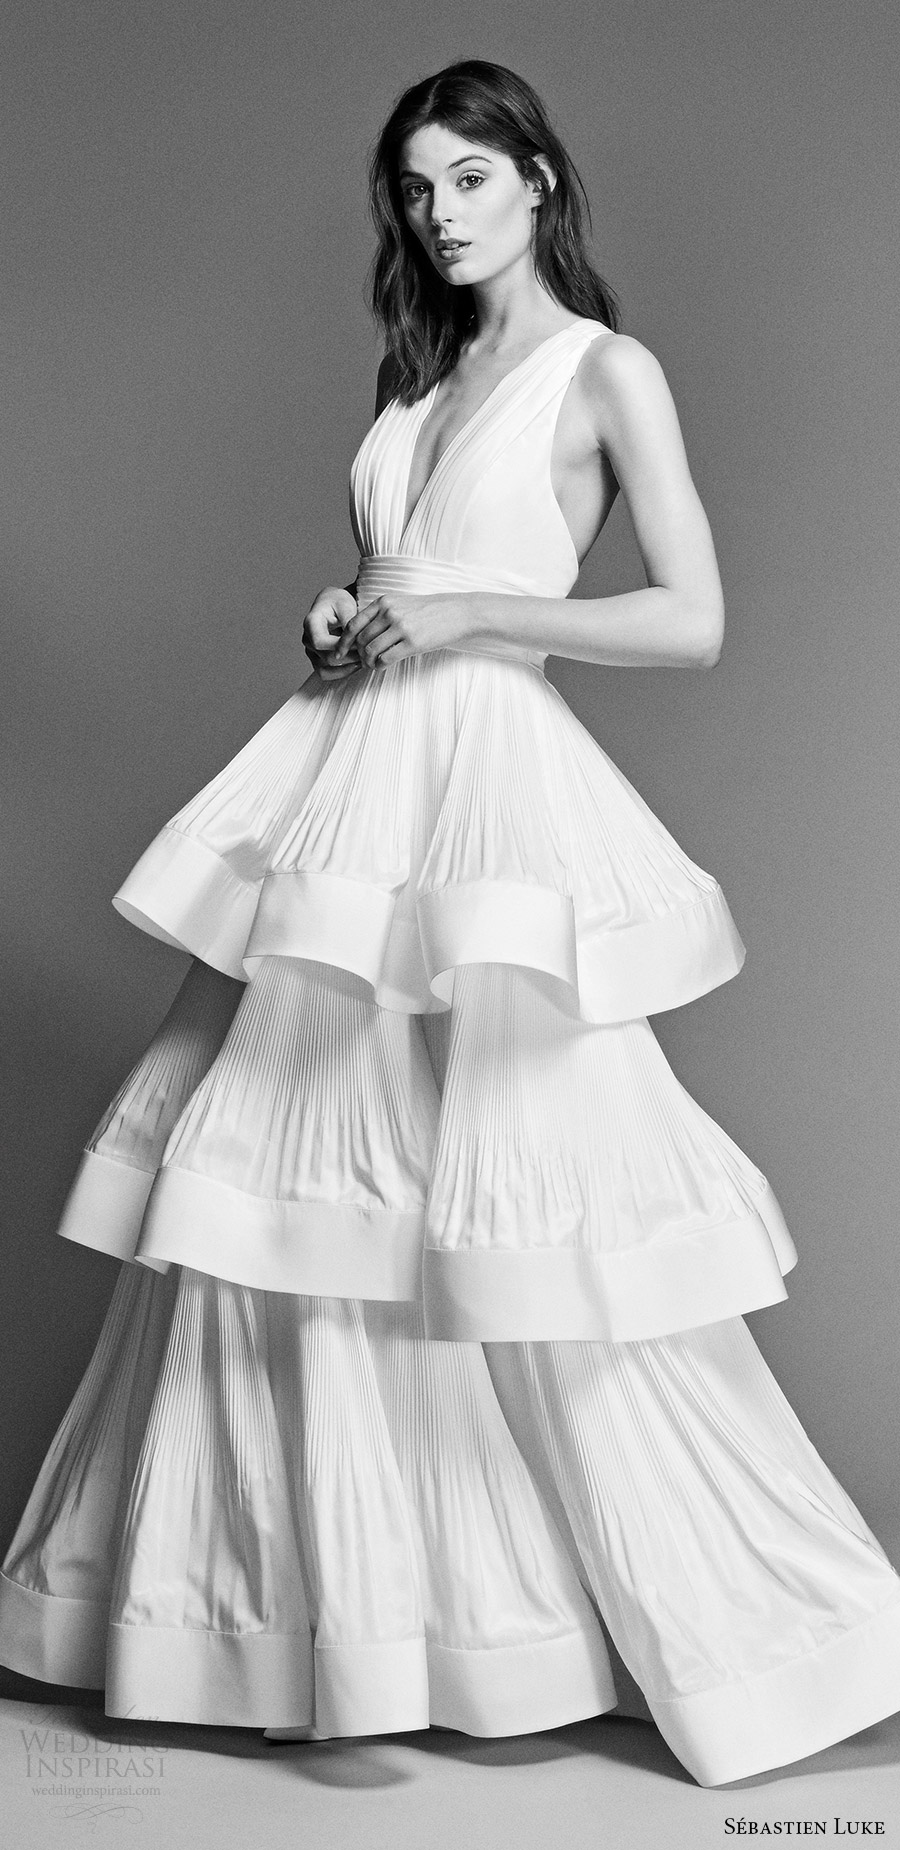 sebastien luke spring 2018 bridal sleeveless deep vneck column wedding dress tiered skirt (18b12) mv modern cross strap back